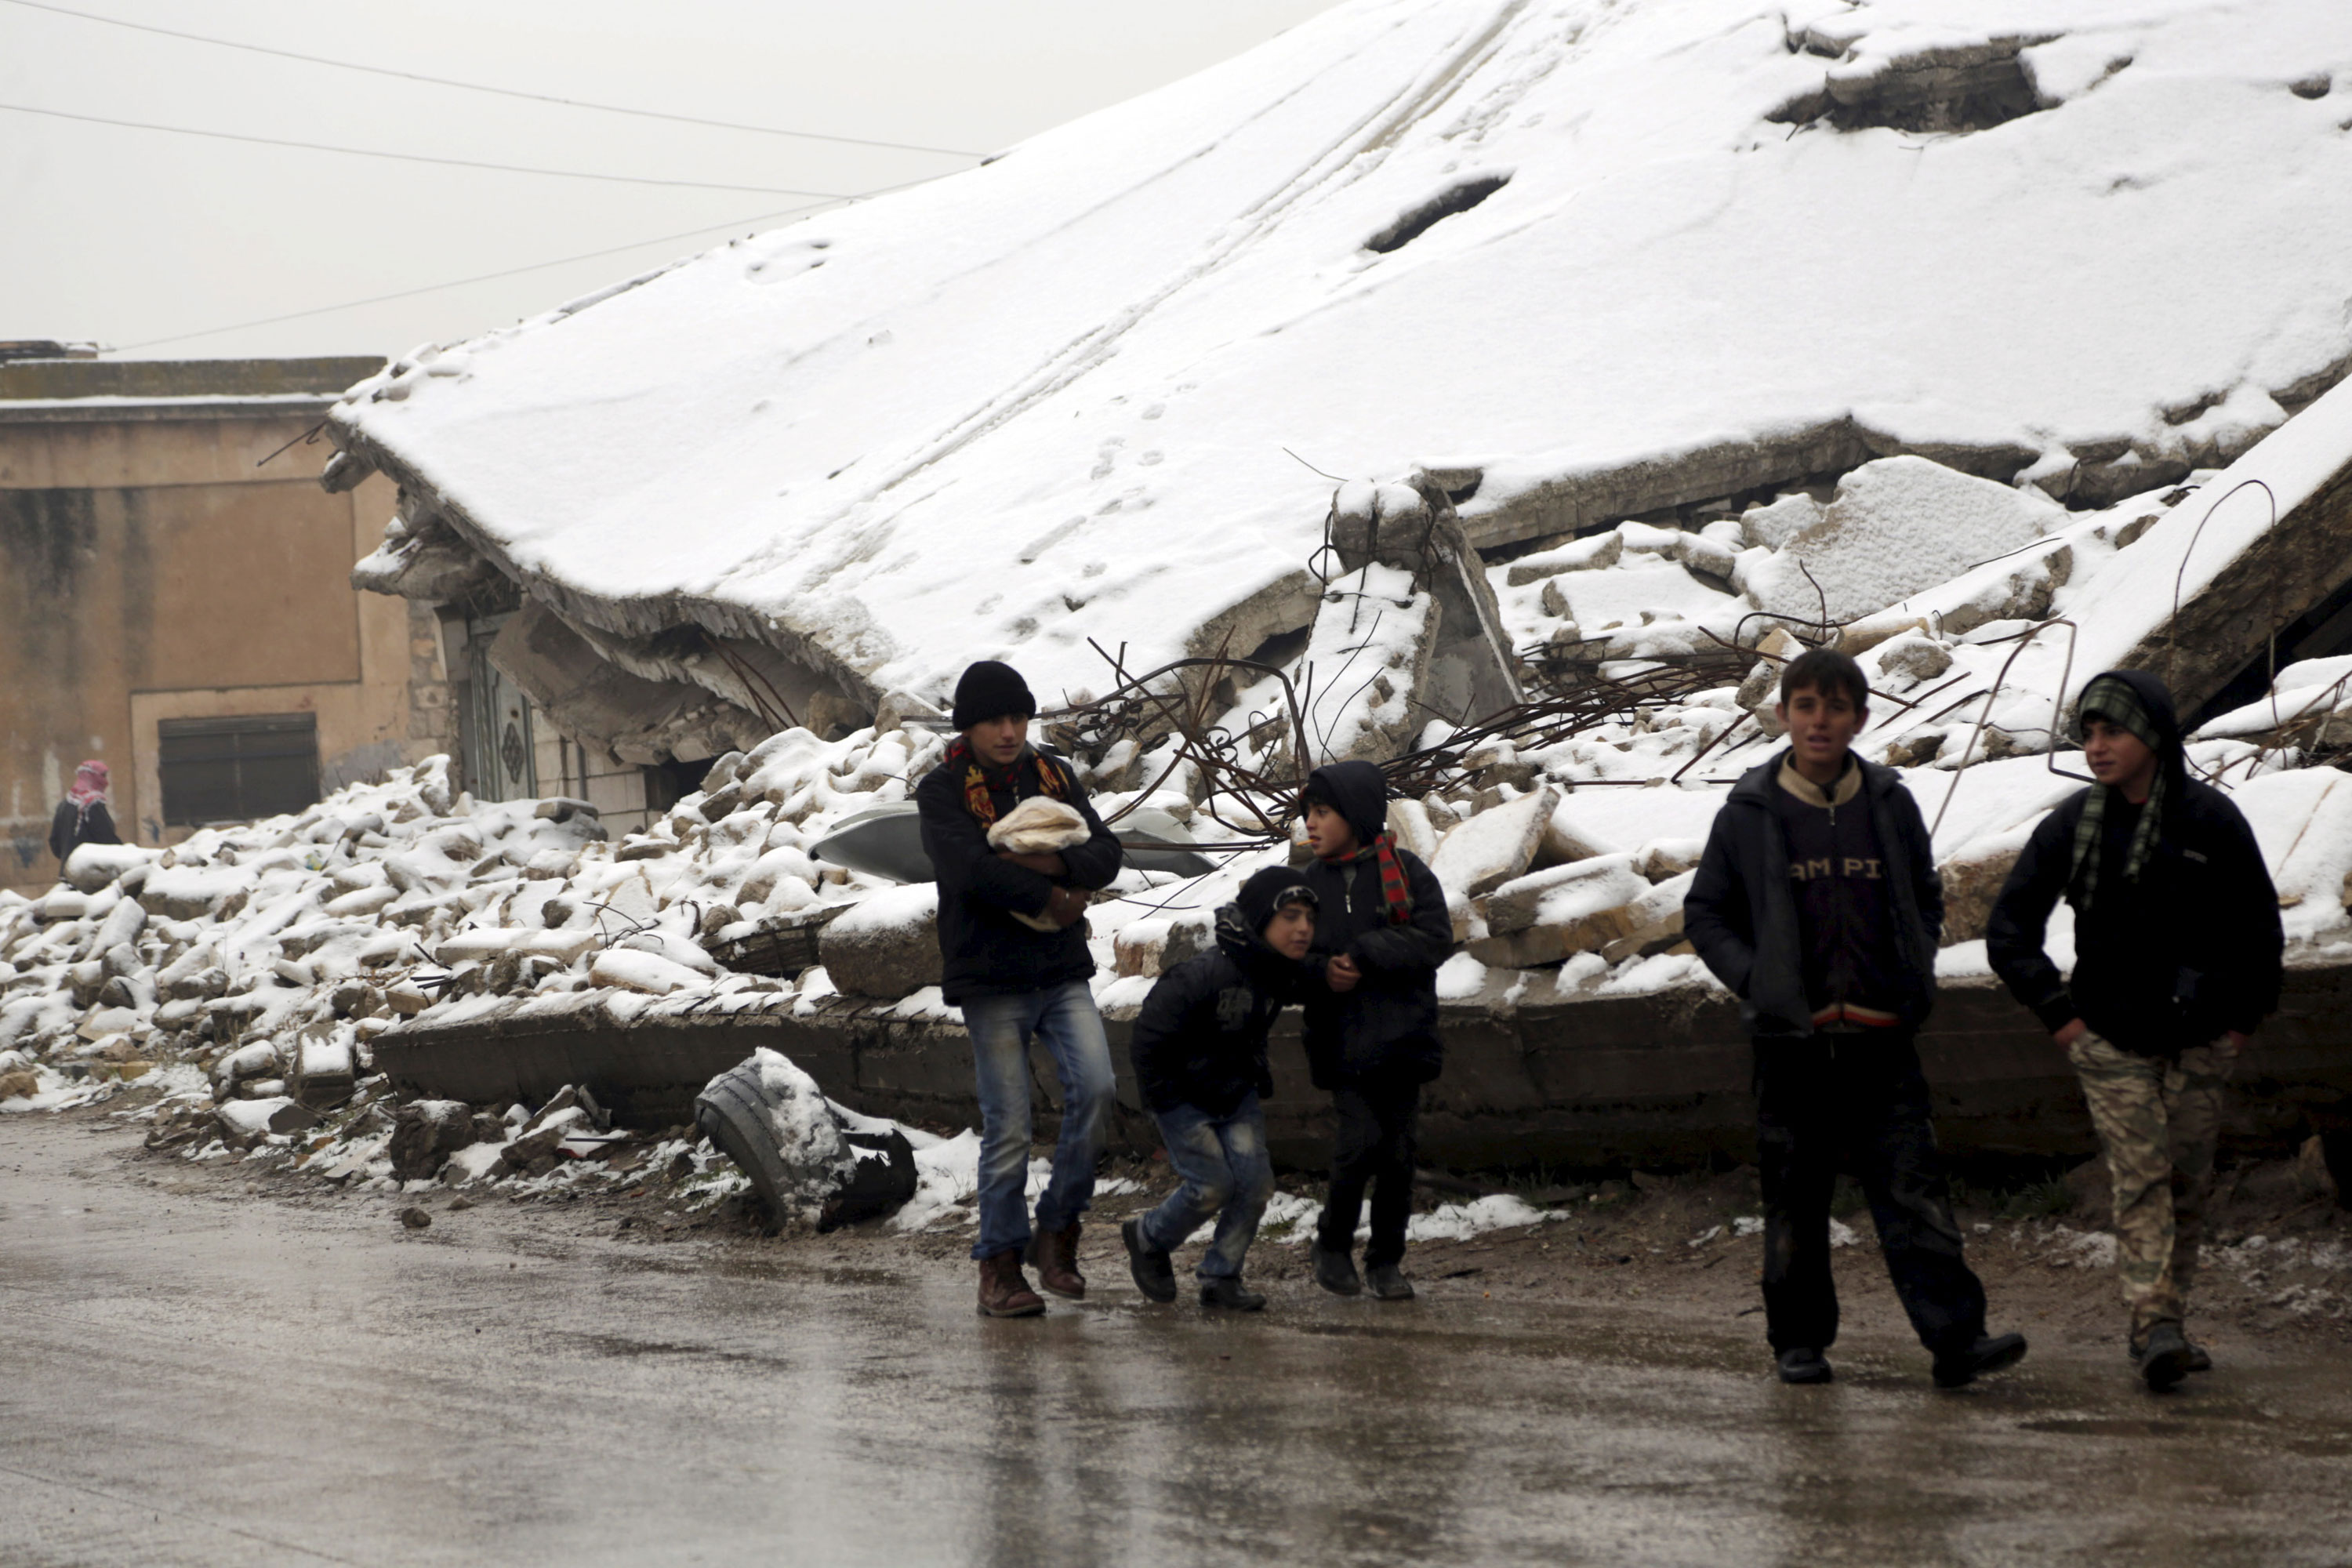 Boys walk past damaged buildings covered with snow in the rebel-controlled area of Maaret al-Numan town in Idlib province, Syria. [Khalil Ashawi/Reuters]